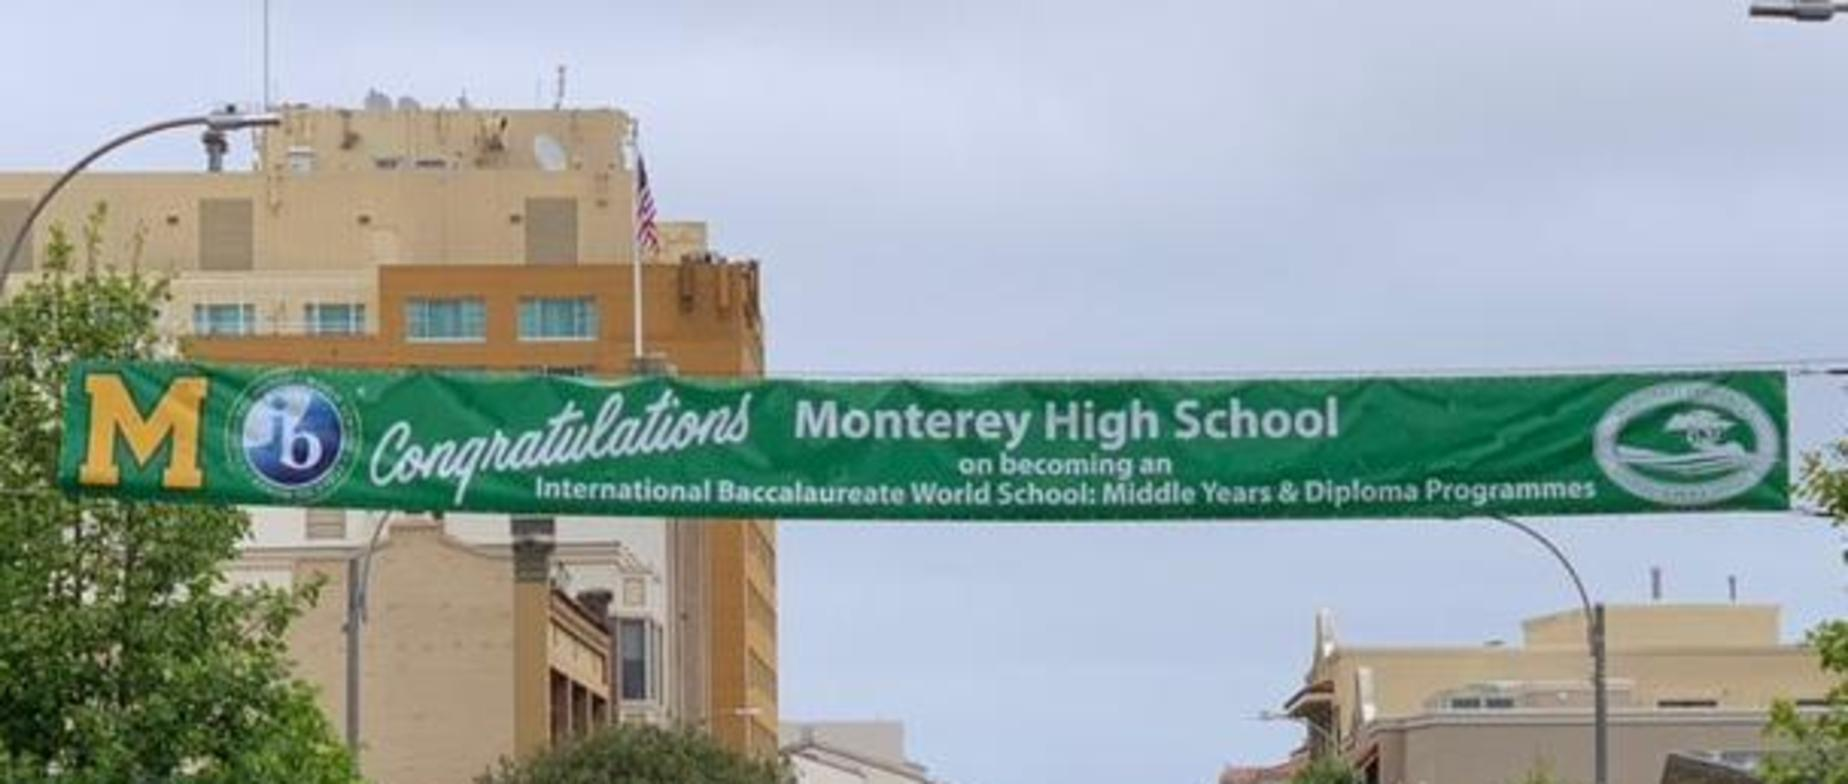 IB World School Banner in Downtown Monterey